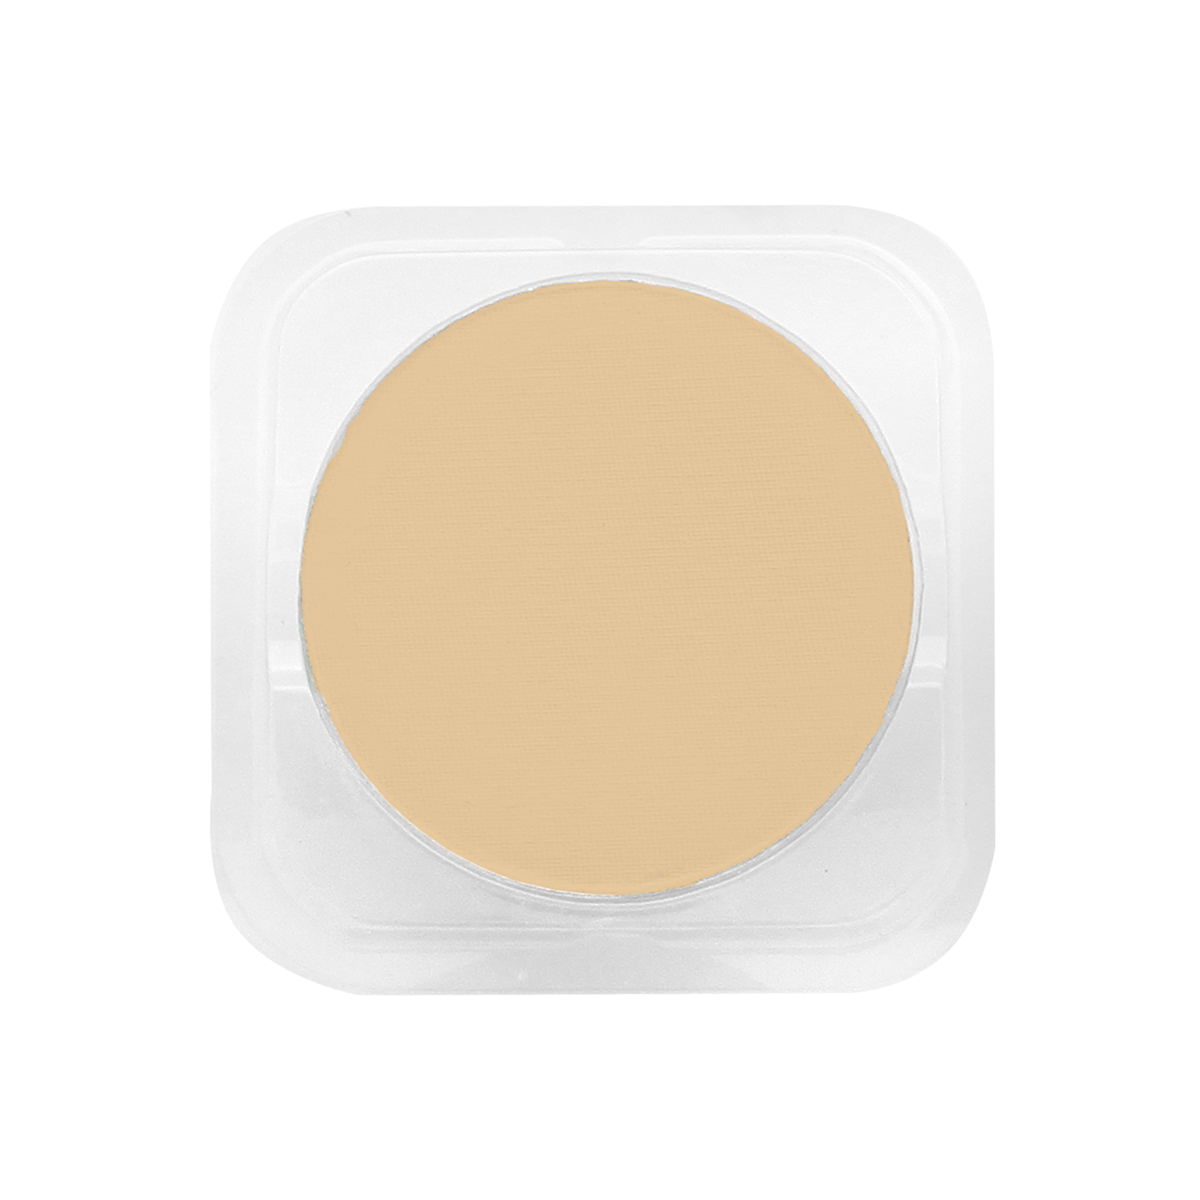 PAC-Long-Wearing-Two-Way-Cake-Refill-04-Sand-Beige-Edited-sfw